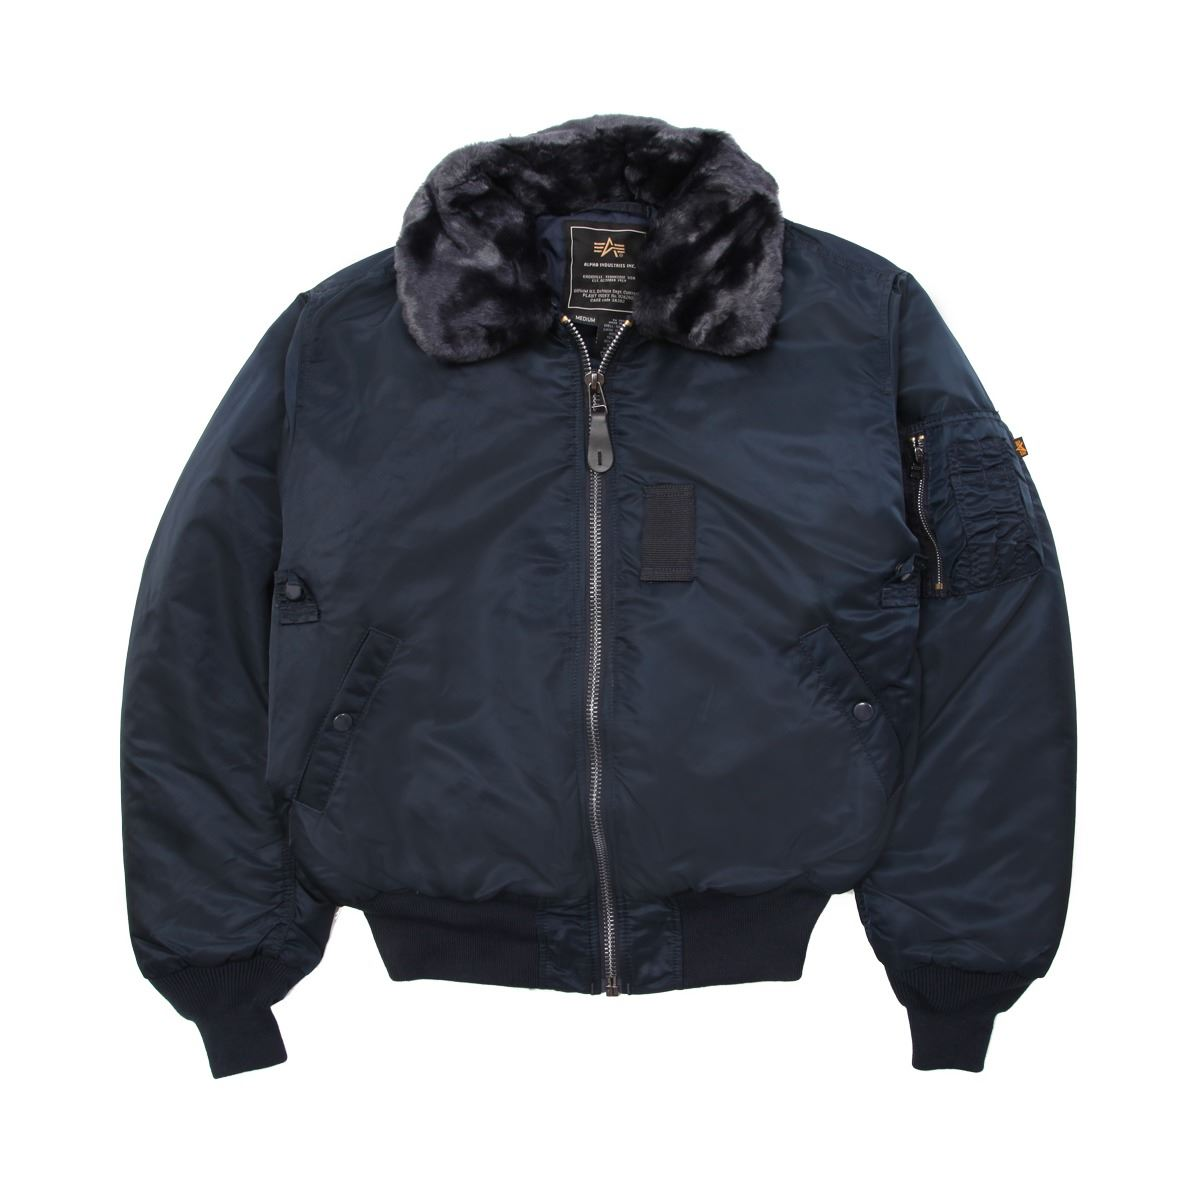 Fine Jacket Inc. B-15 Flight Jacket | Alpha Industries